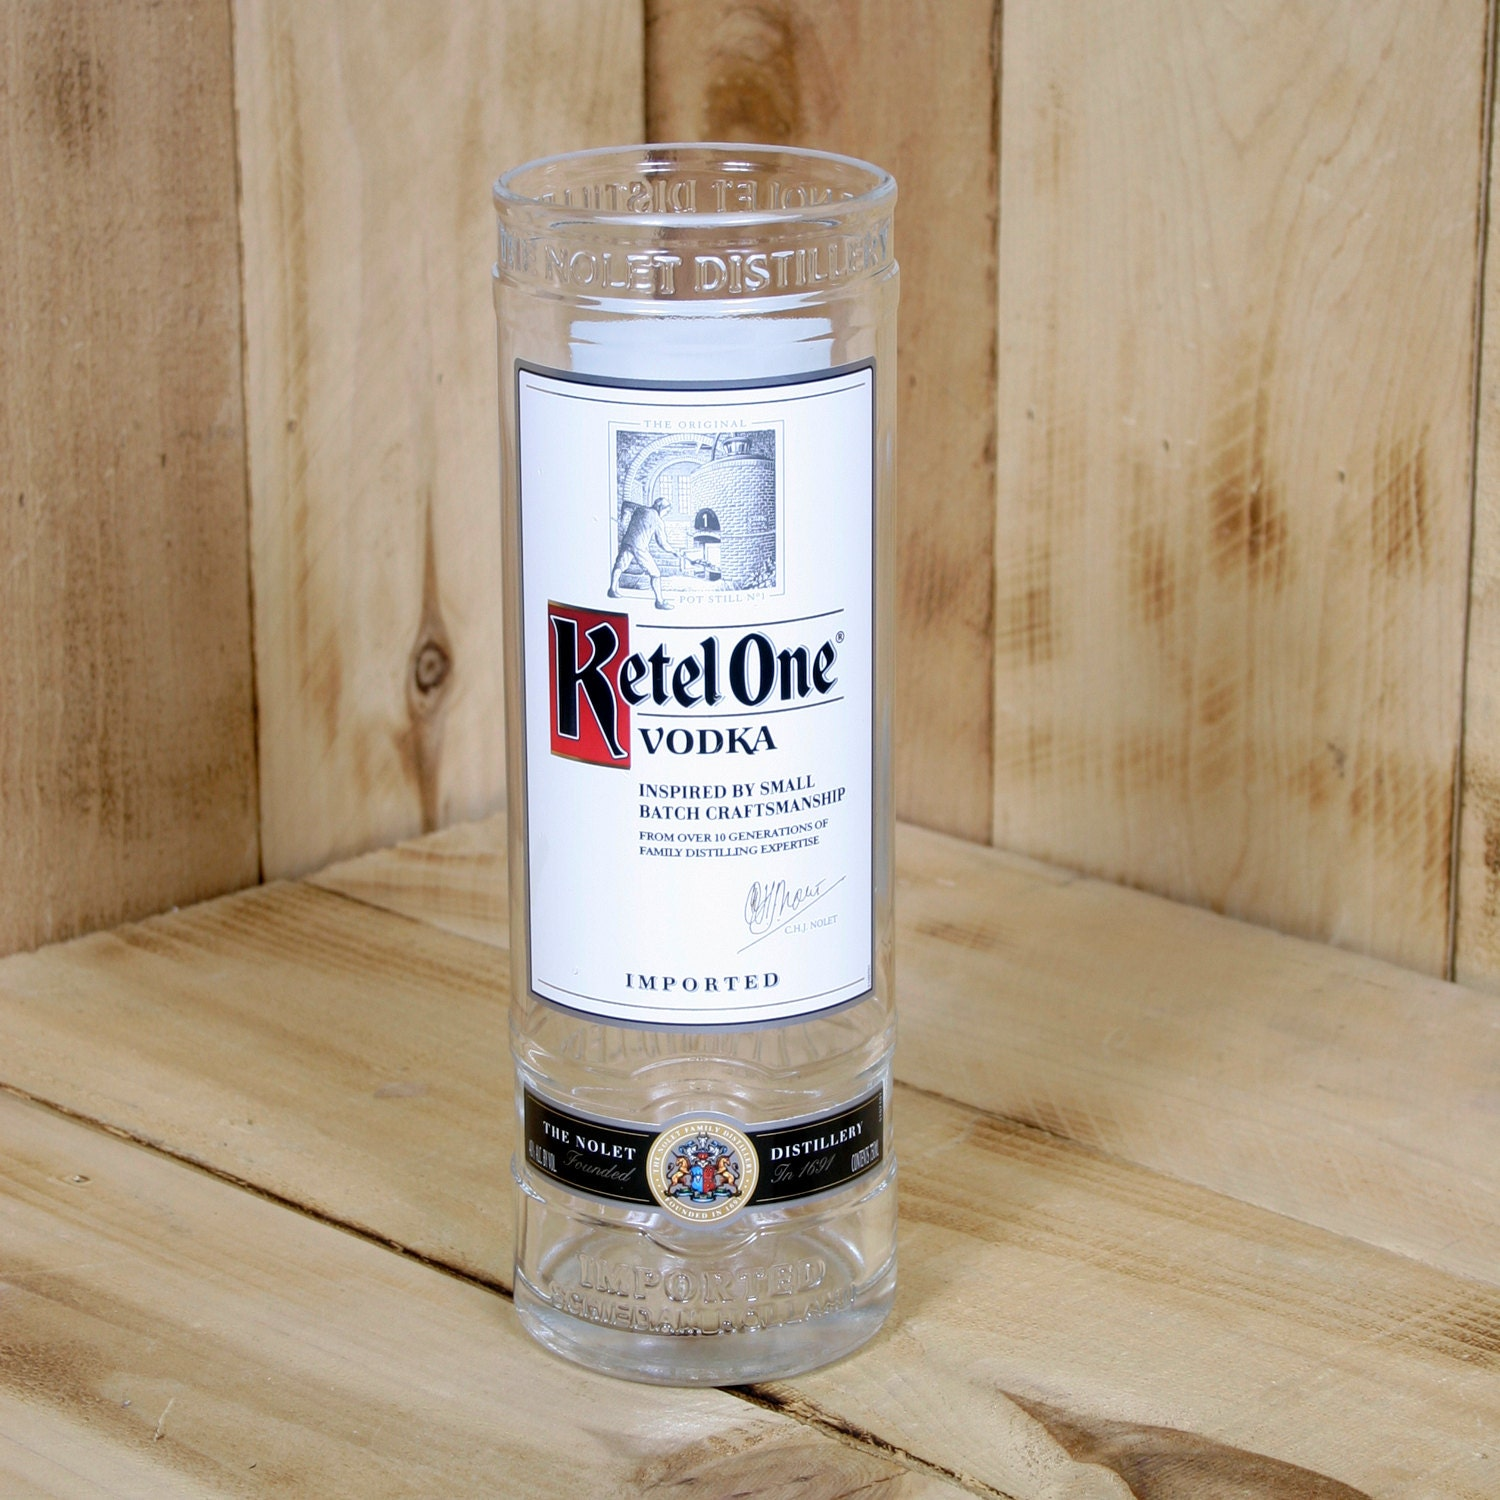 Upcycled ketel one vodka vase made from a bottle for Alcohol bottles made into glasses